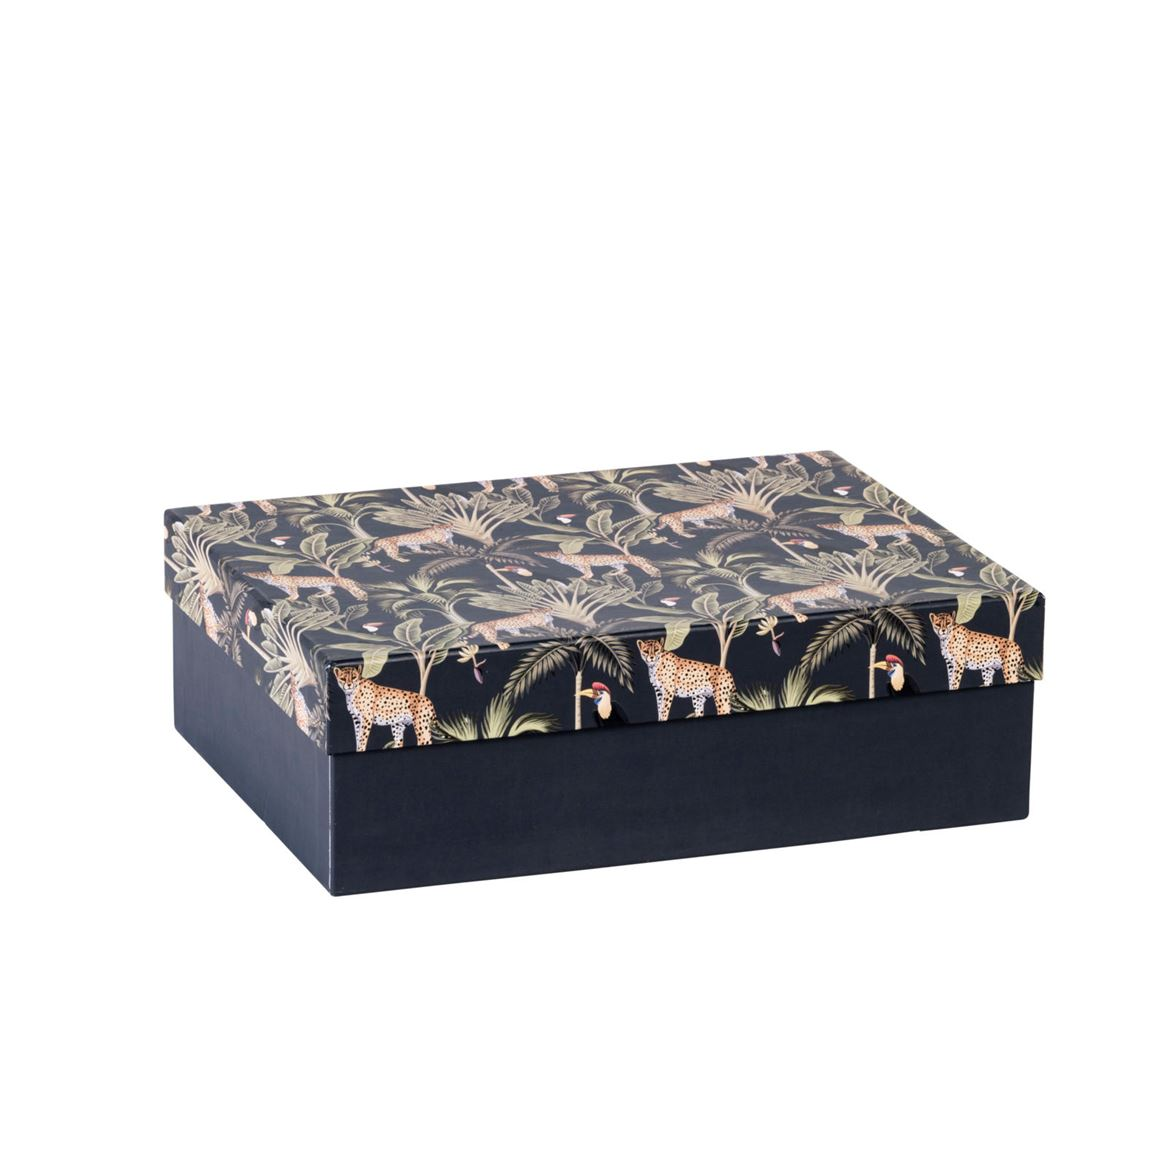 JUNGLE Scatola multicolore H 7 x W 23 x D 17 cm_jungle-scatola-multicolore-h-7-x-w-23-x-d-17-cm